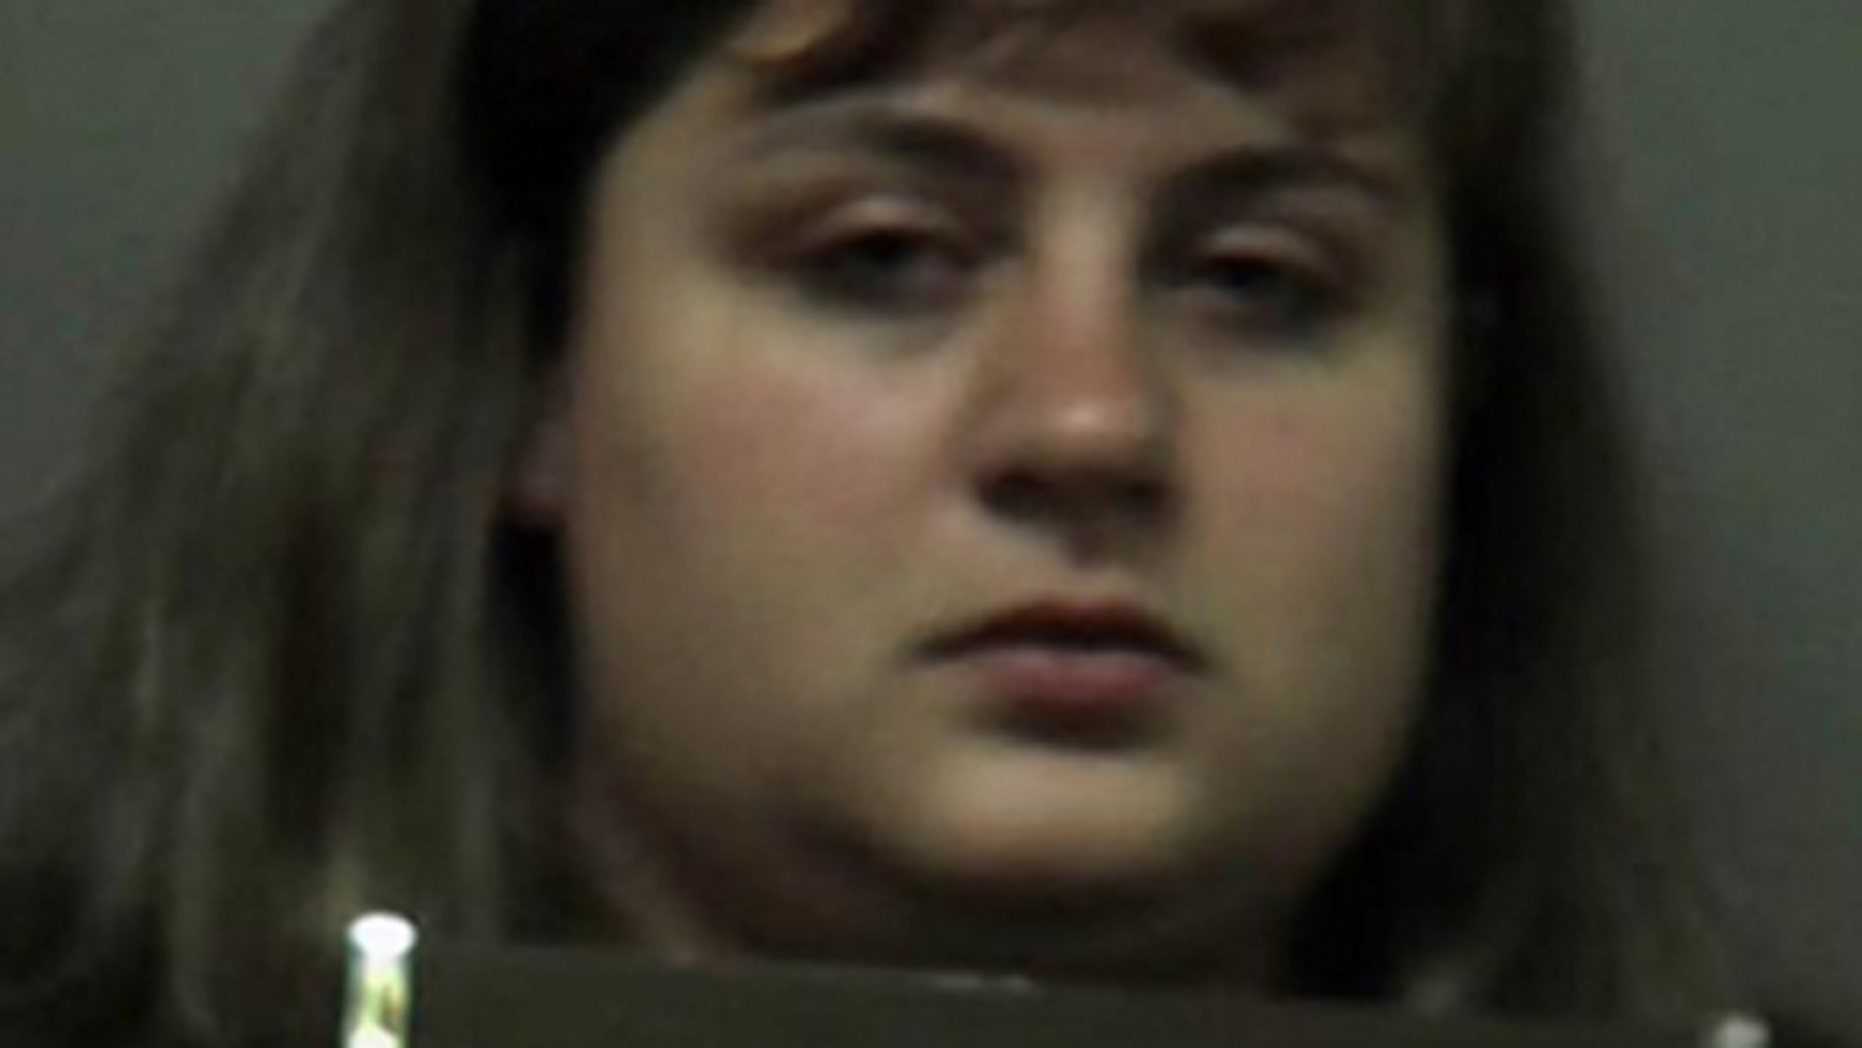 Maryland State Police arrested Samantha Unger, 23, who allegedly told officers that she put drops of Visine into water and juice for her 3-year-old and that her 1-year-old became sick by drinking them accidentally.